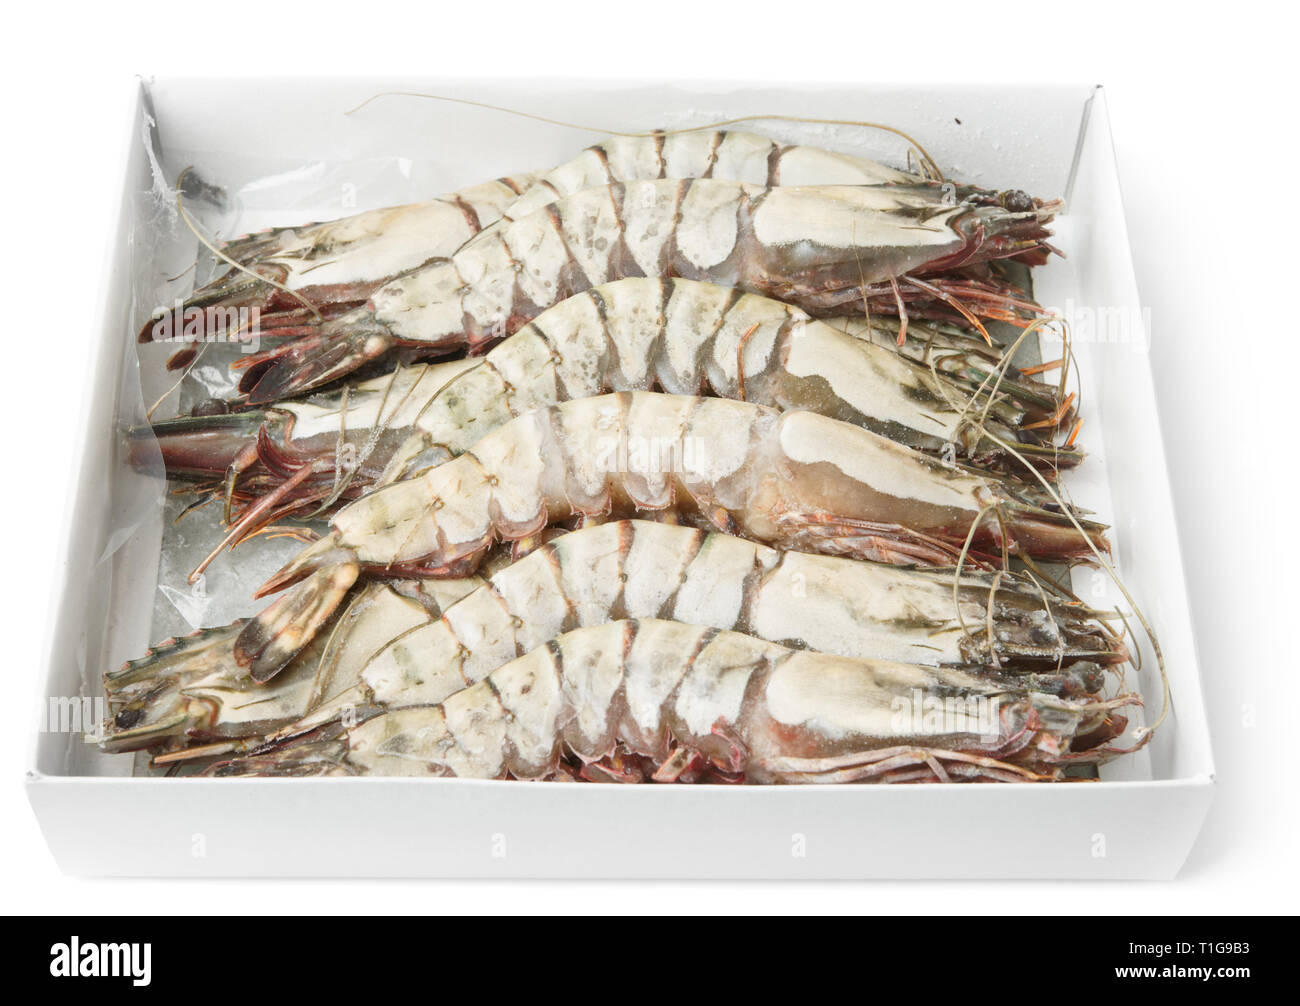 Giant prawns in retail pack, isolated on white background - Stock Image